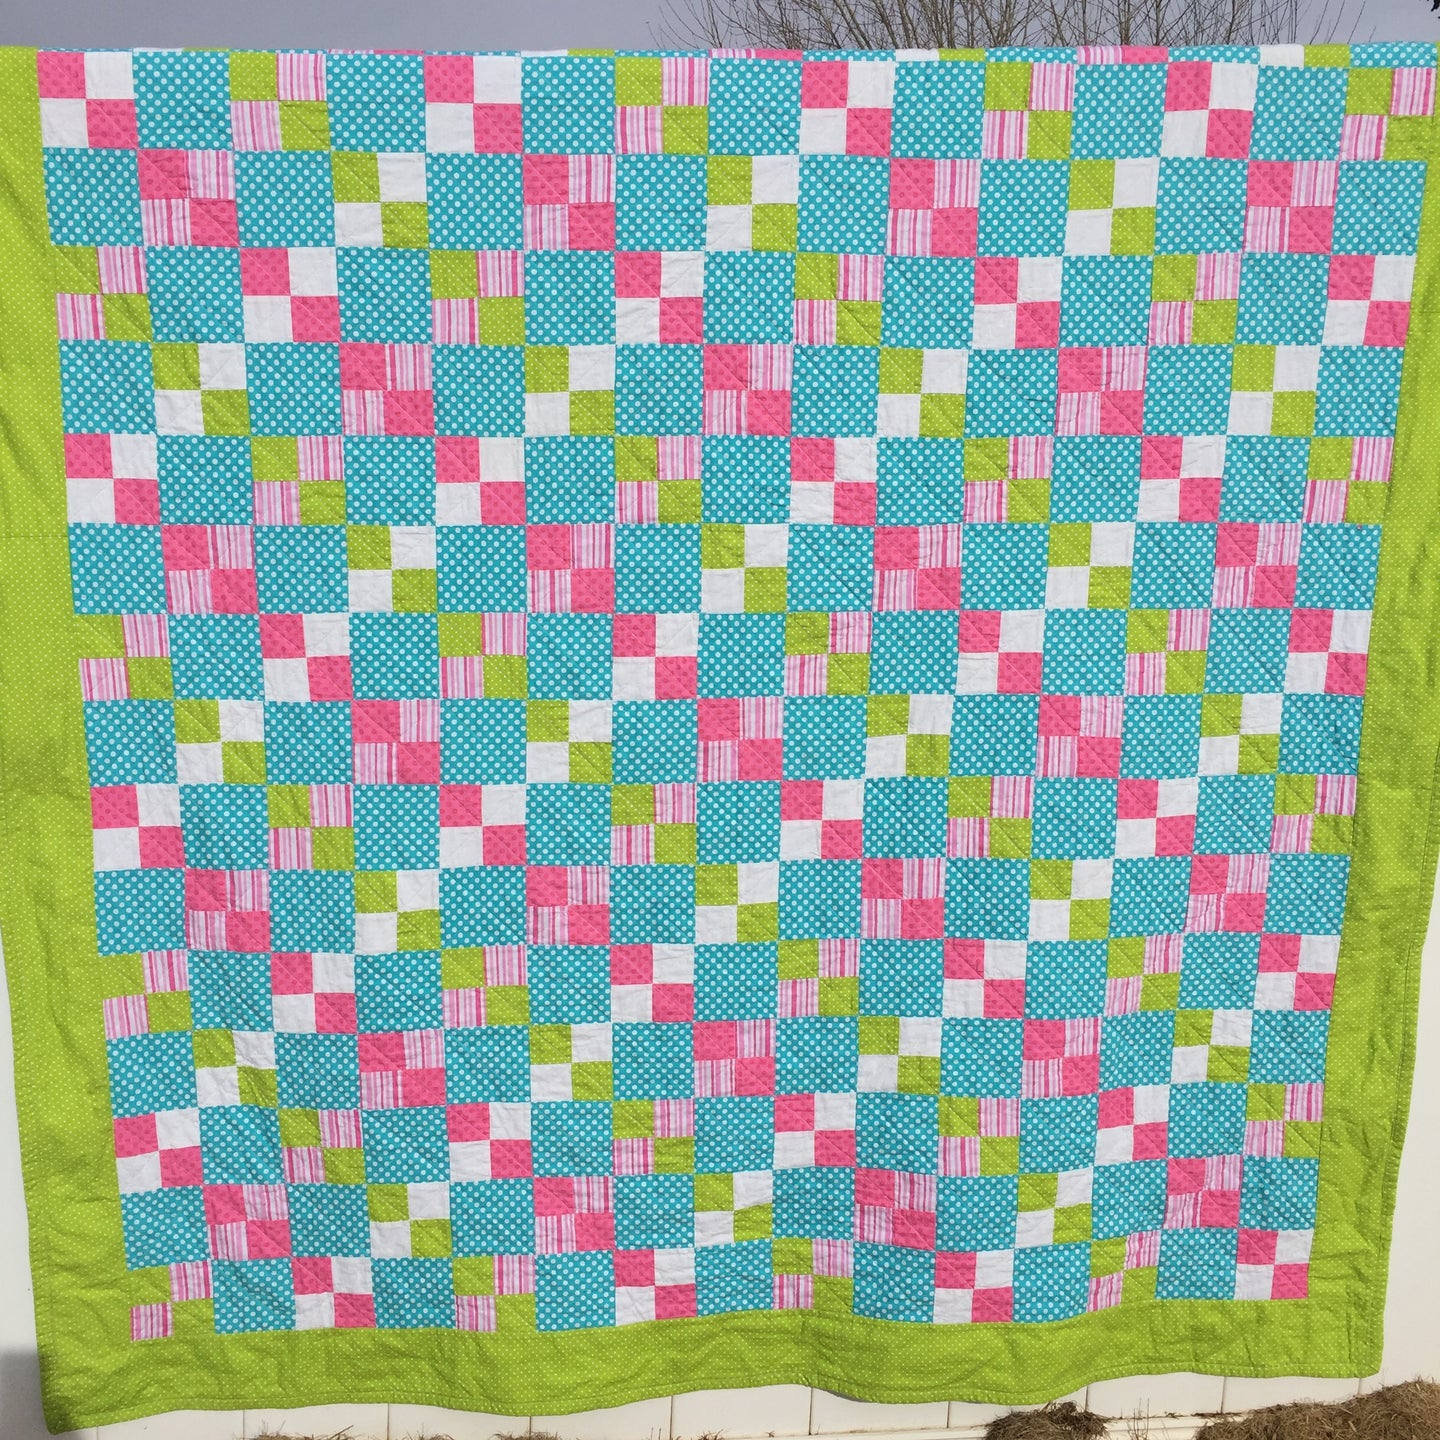 Alana Quilt Pattern - Easy quilt made in squares with pink, teal, white, and green